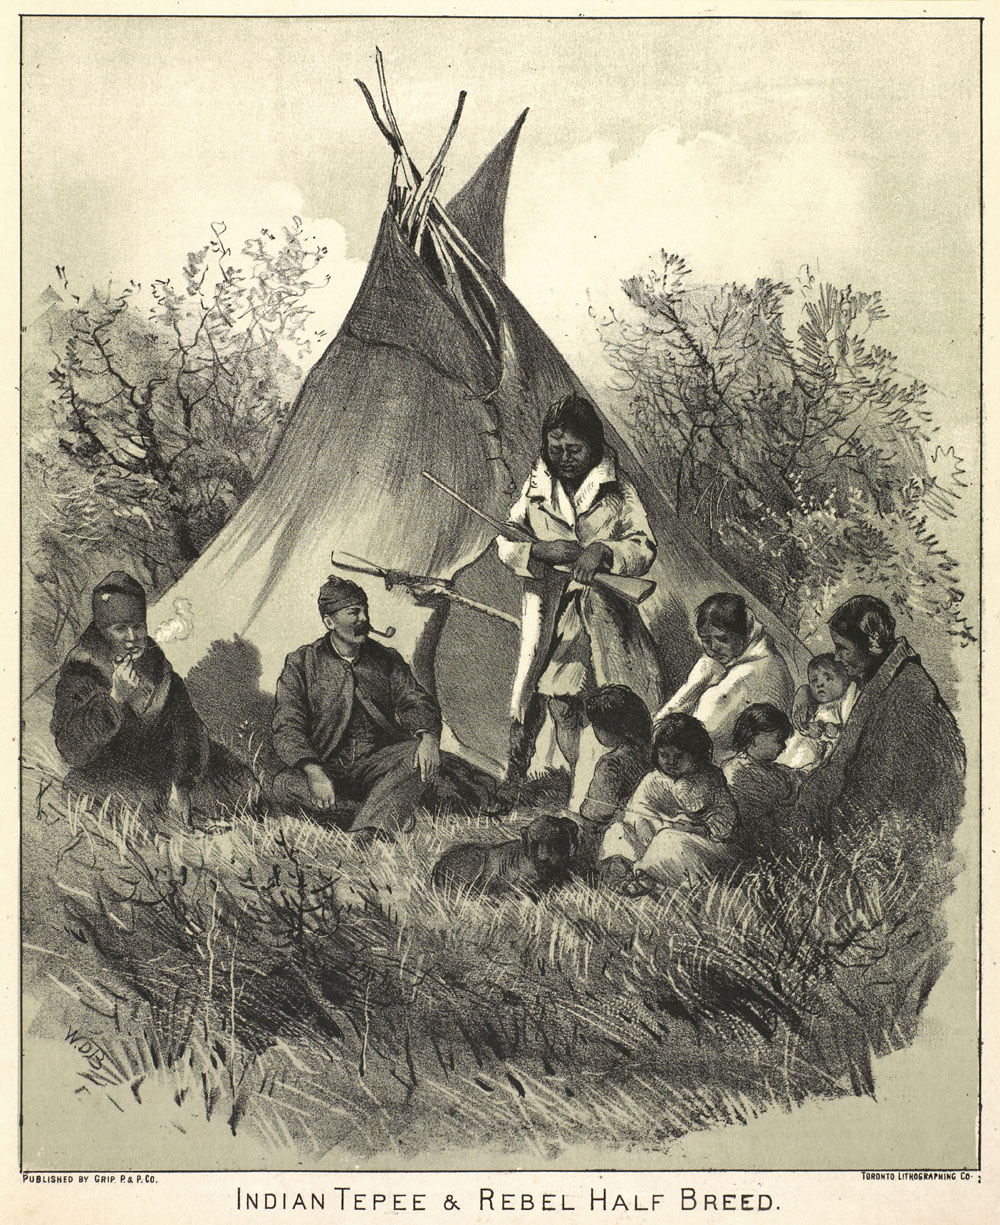 Black and white lithograph print depicting two Métis men sitting on the ground in front of a teepee while a woman stands with a rifle cradled in her arms. A family of six and a dog sit on the ground on the right side of the composition.